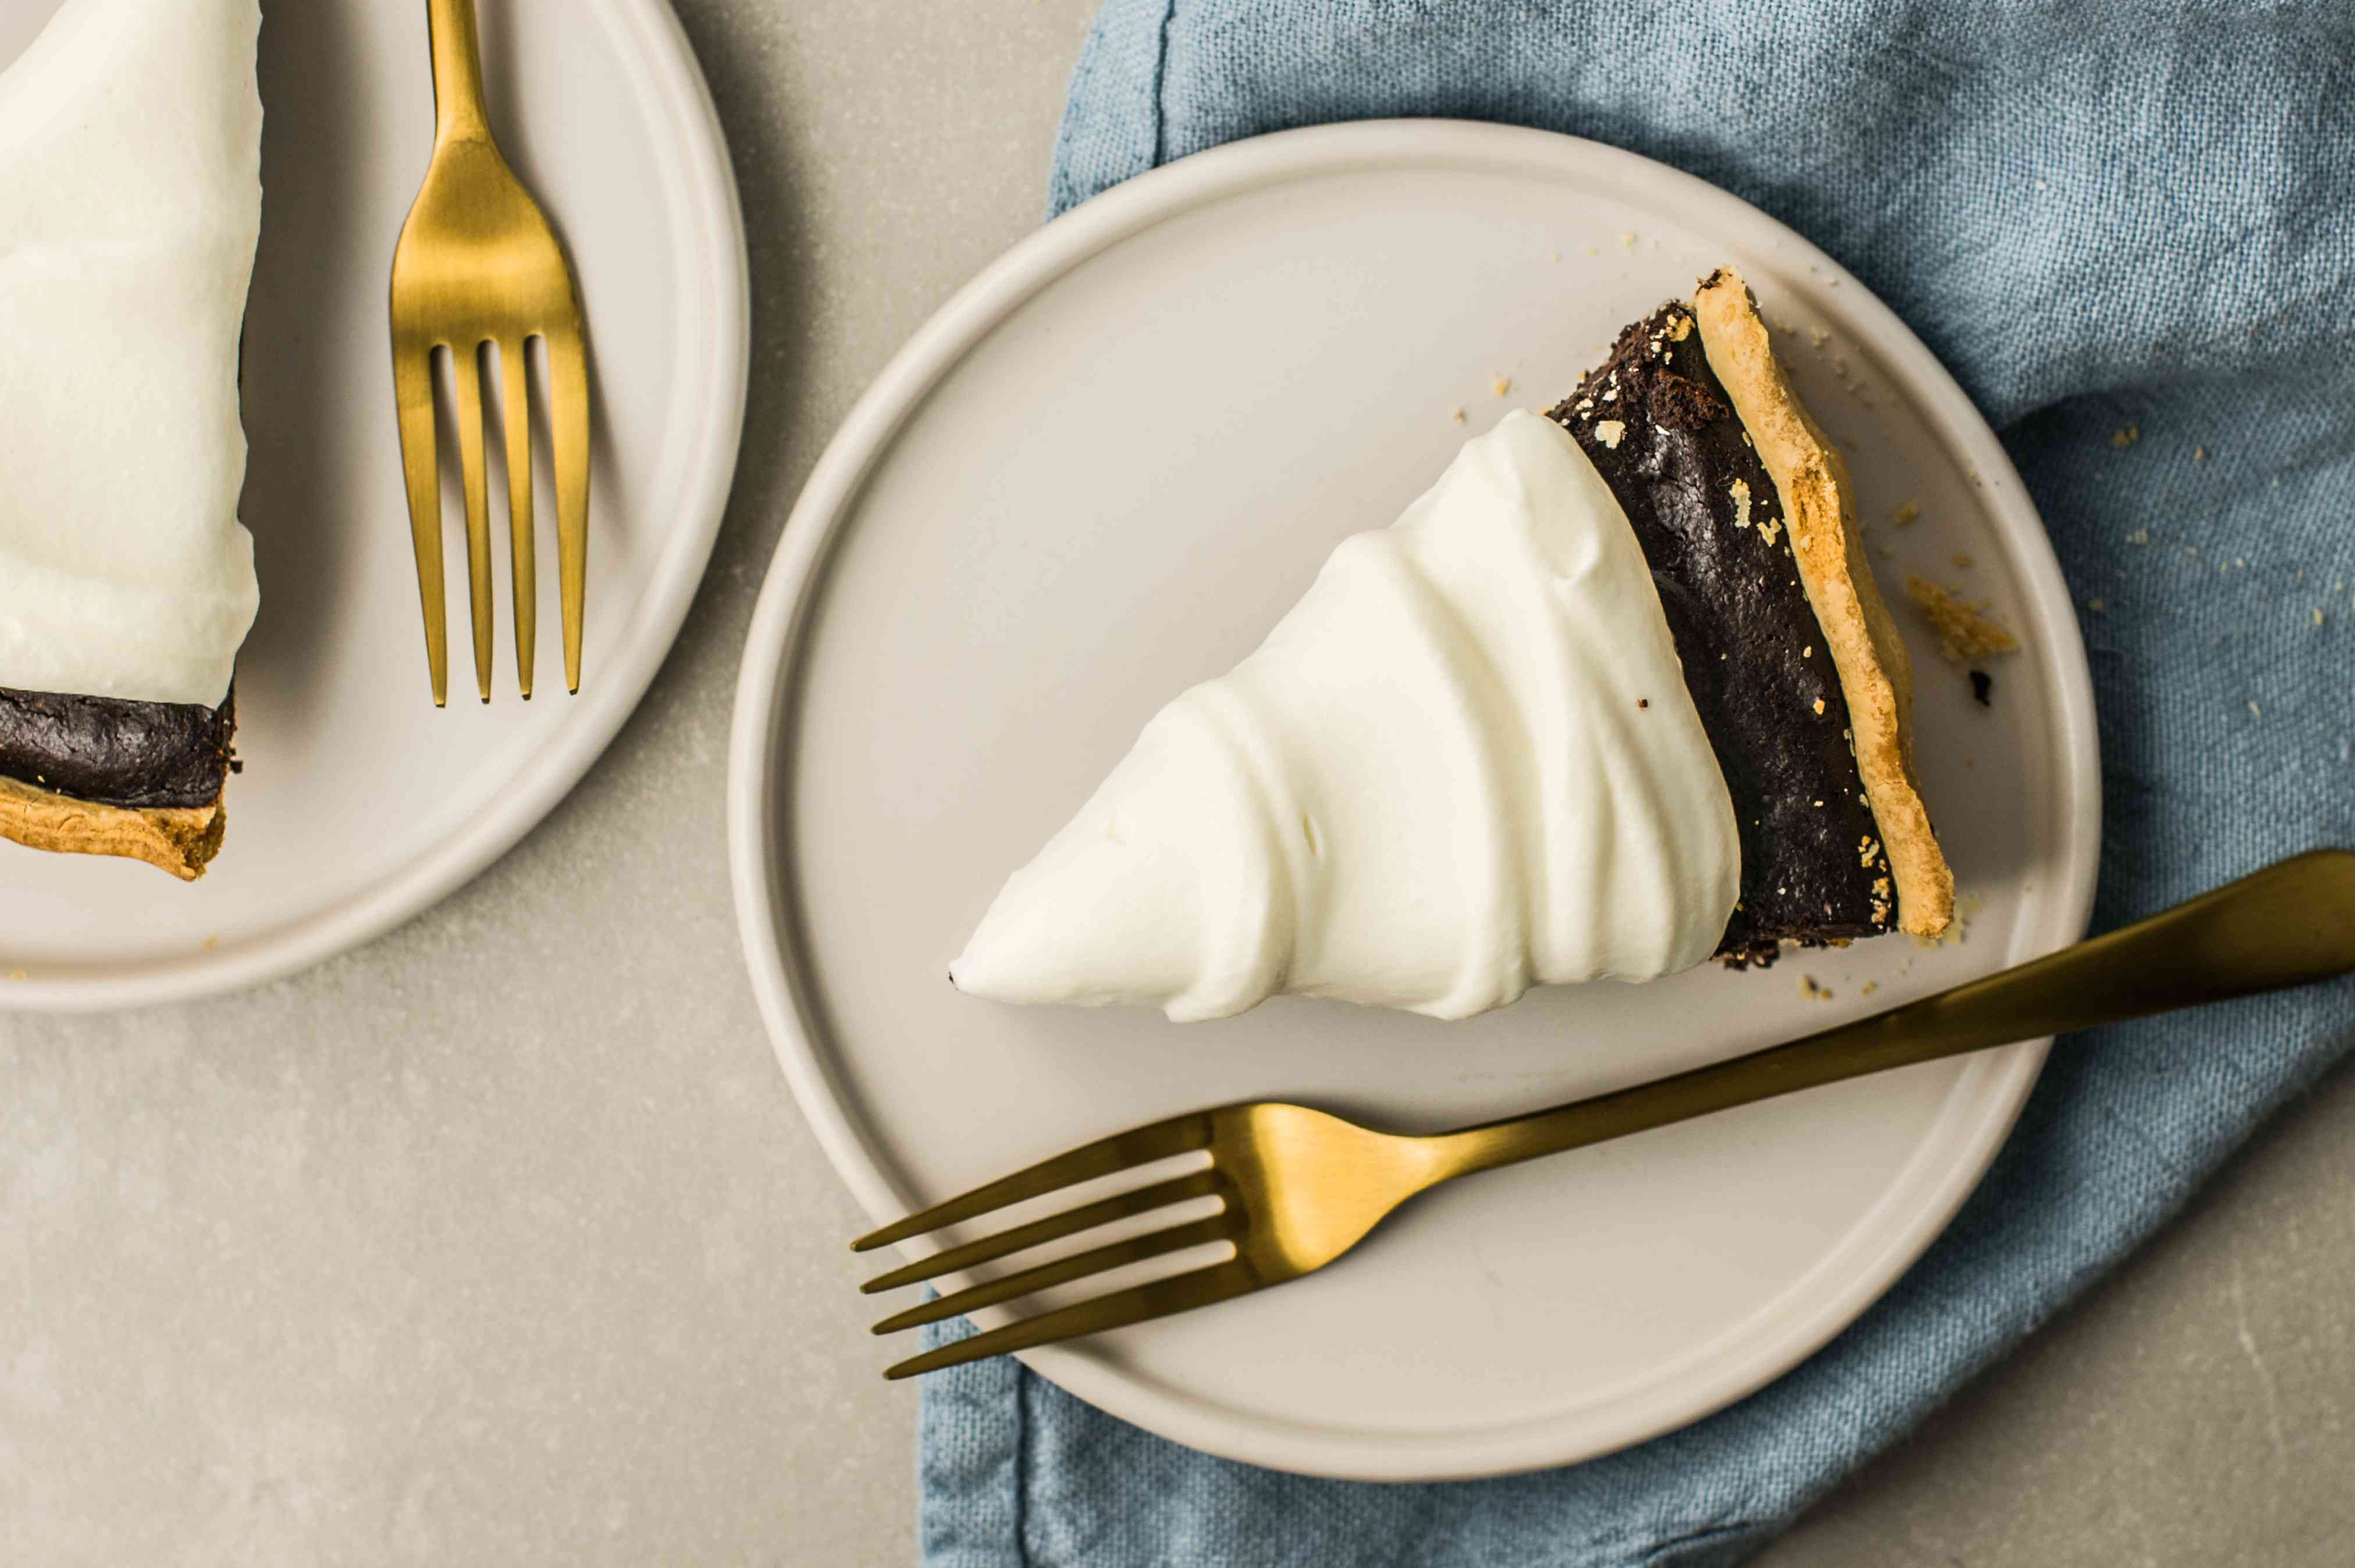 Top your favorite dessert with whipped cream.